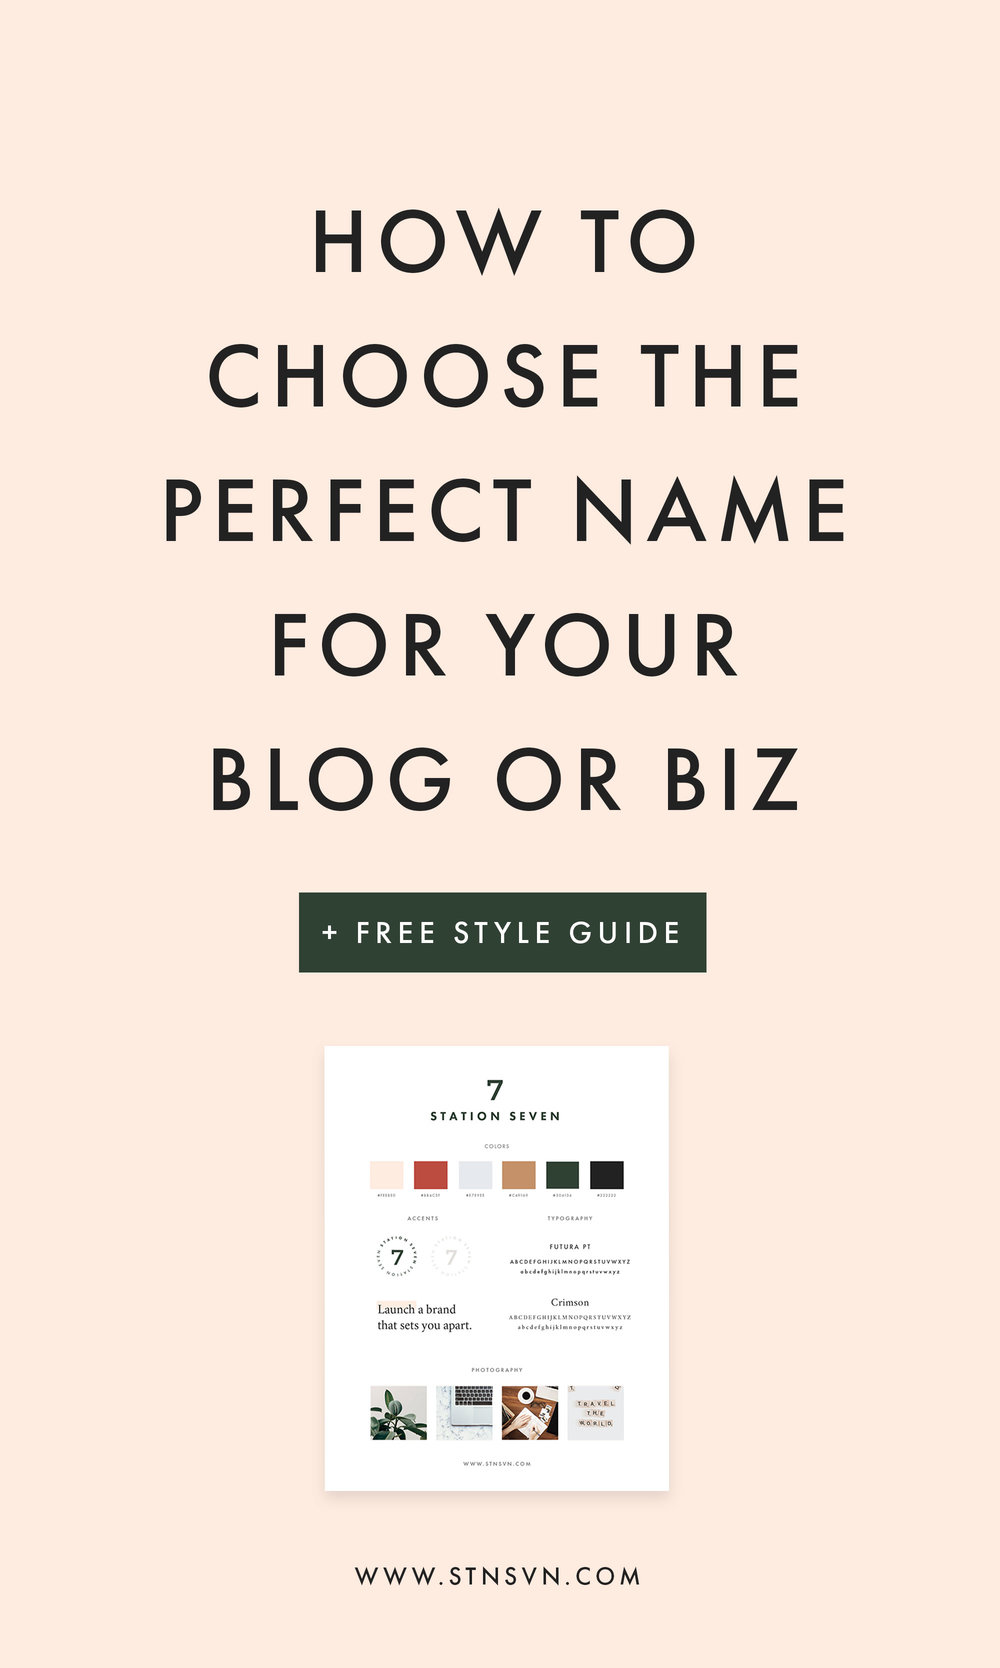 How to Choose the Perfect Name for Your Blog or Biz.jpeg